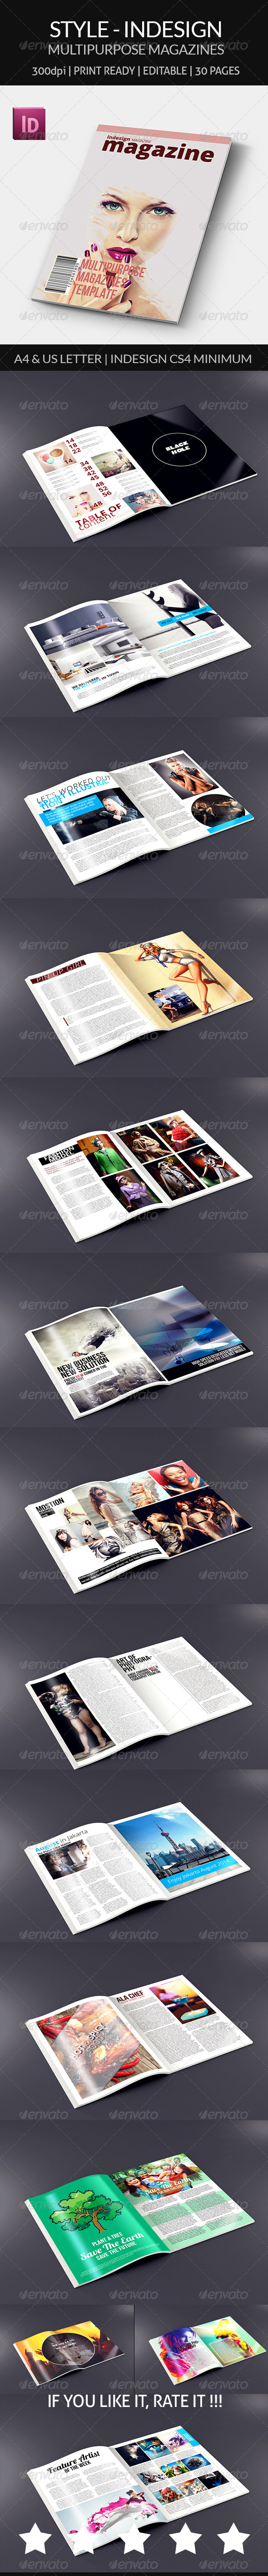 GraphicRiver Style Indesign Magazine Template 8566633